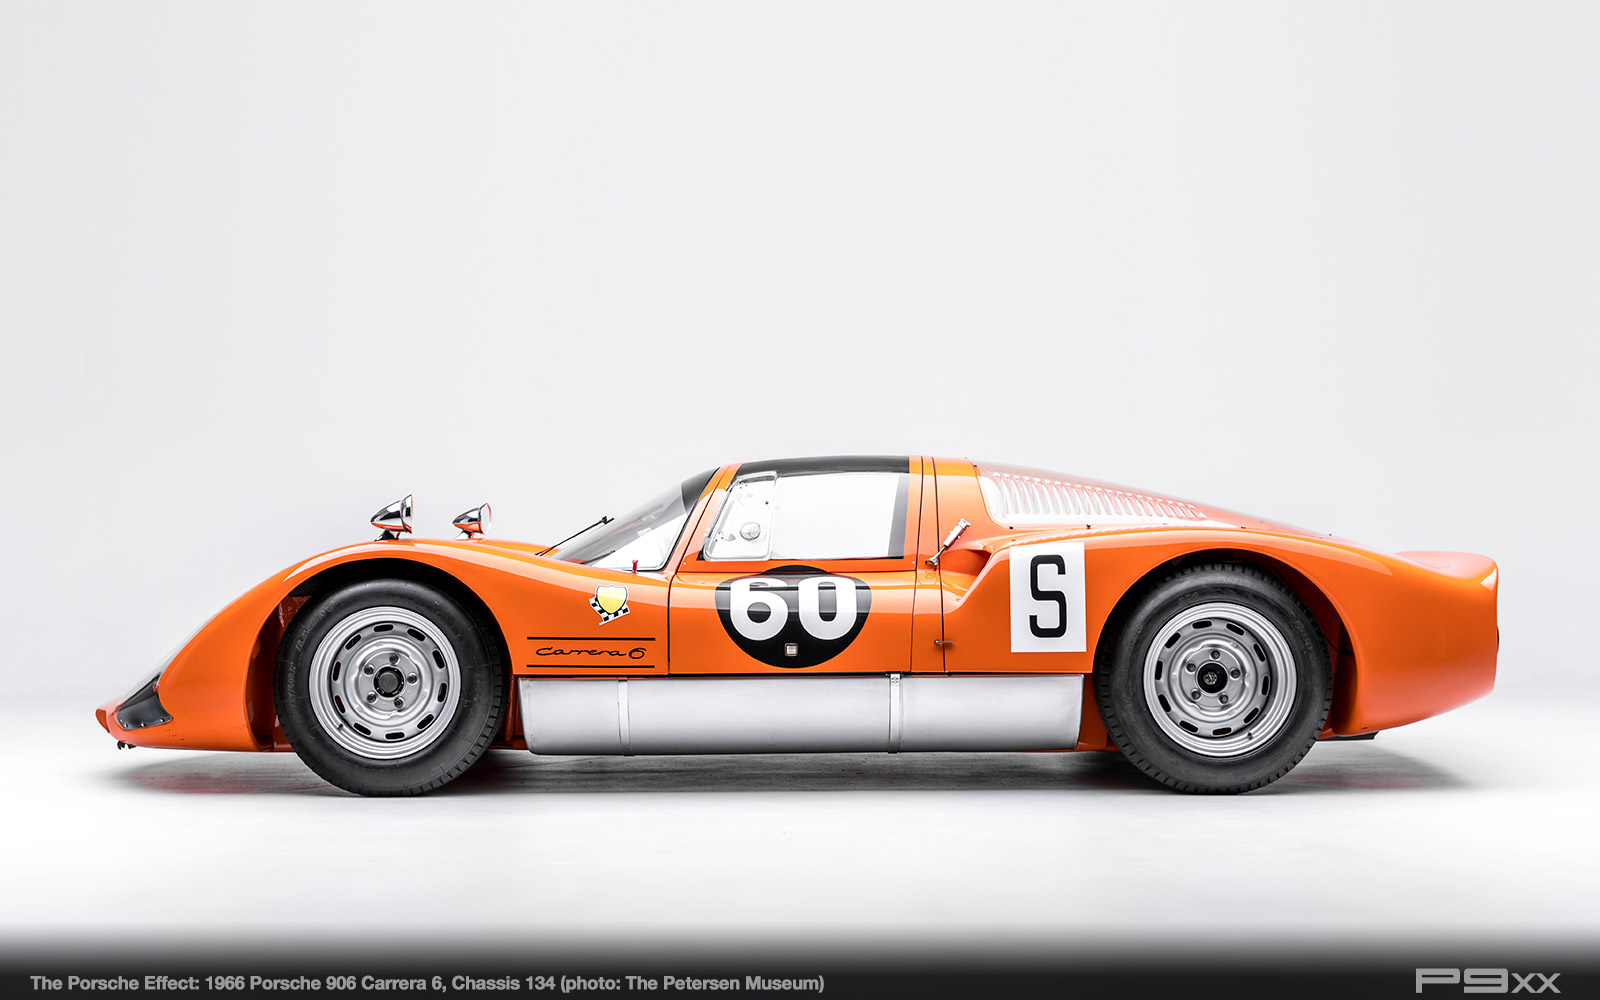 1964-906-Carrera-6-Chassis-134-Petersen-Automotive-Museum-The-Porsche-Effect-360